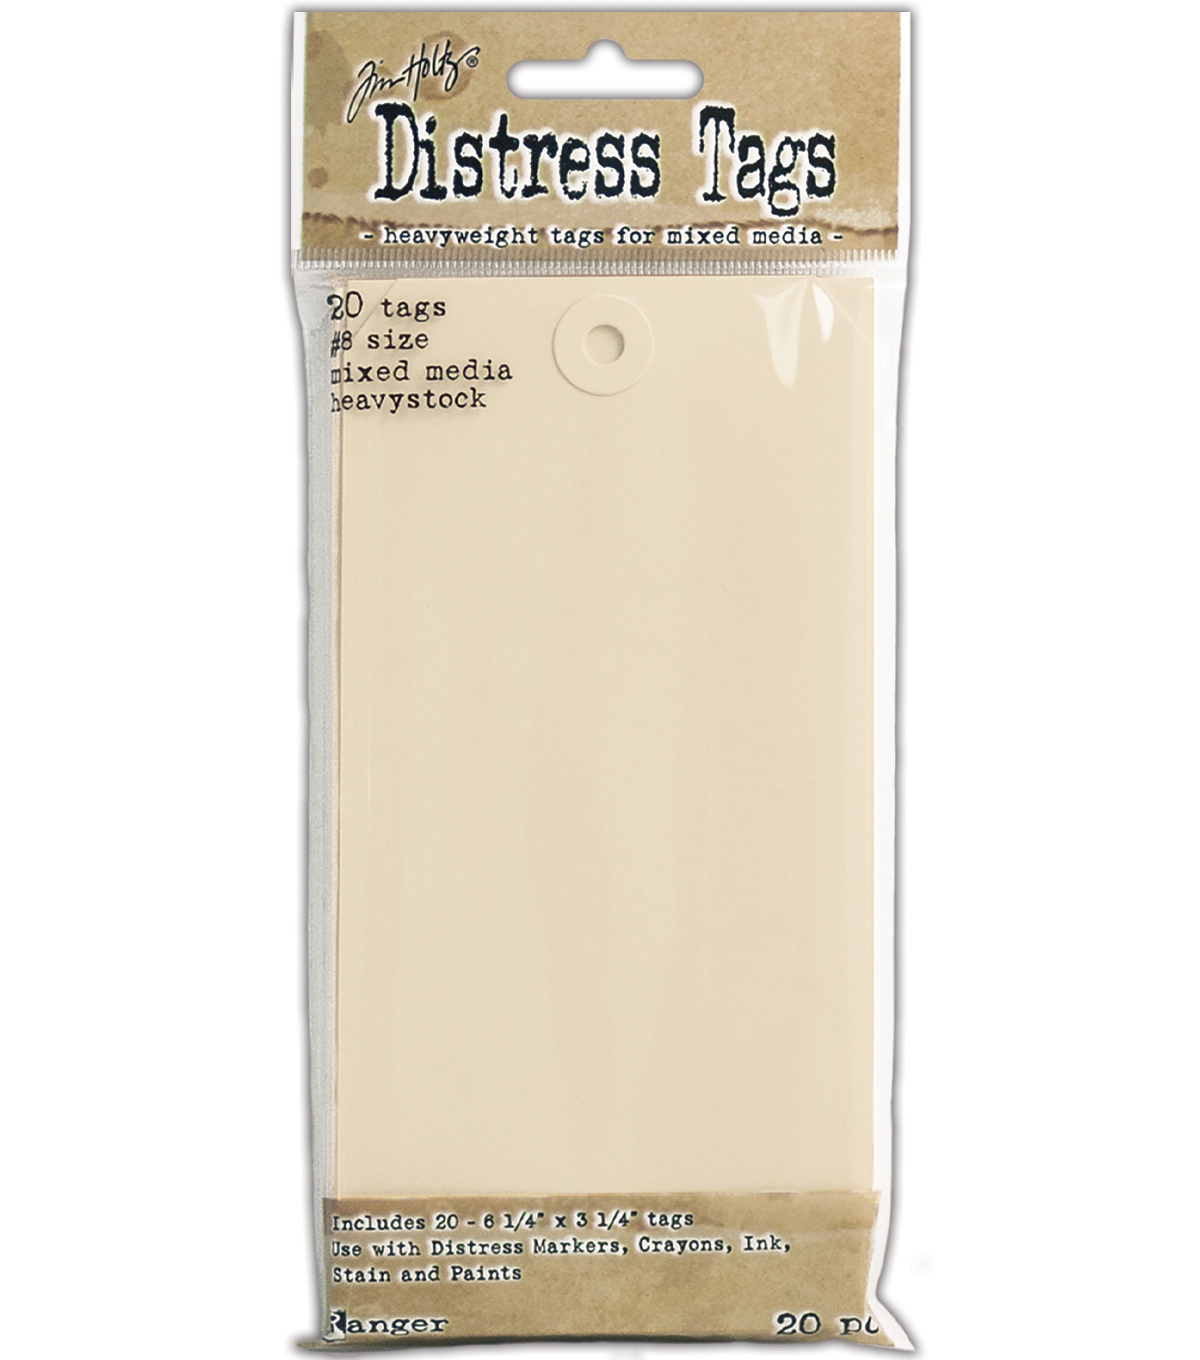 Tim Holtz® Distress Pack of 20 Mixed Media Heavystock Tags #8